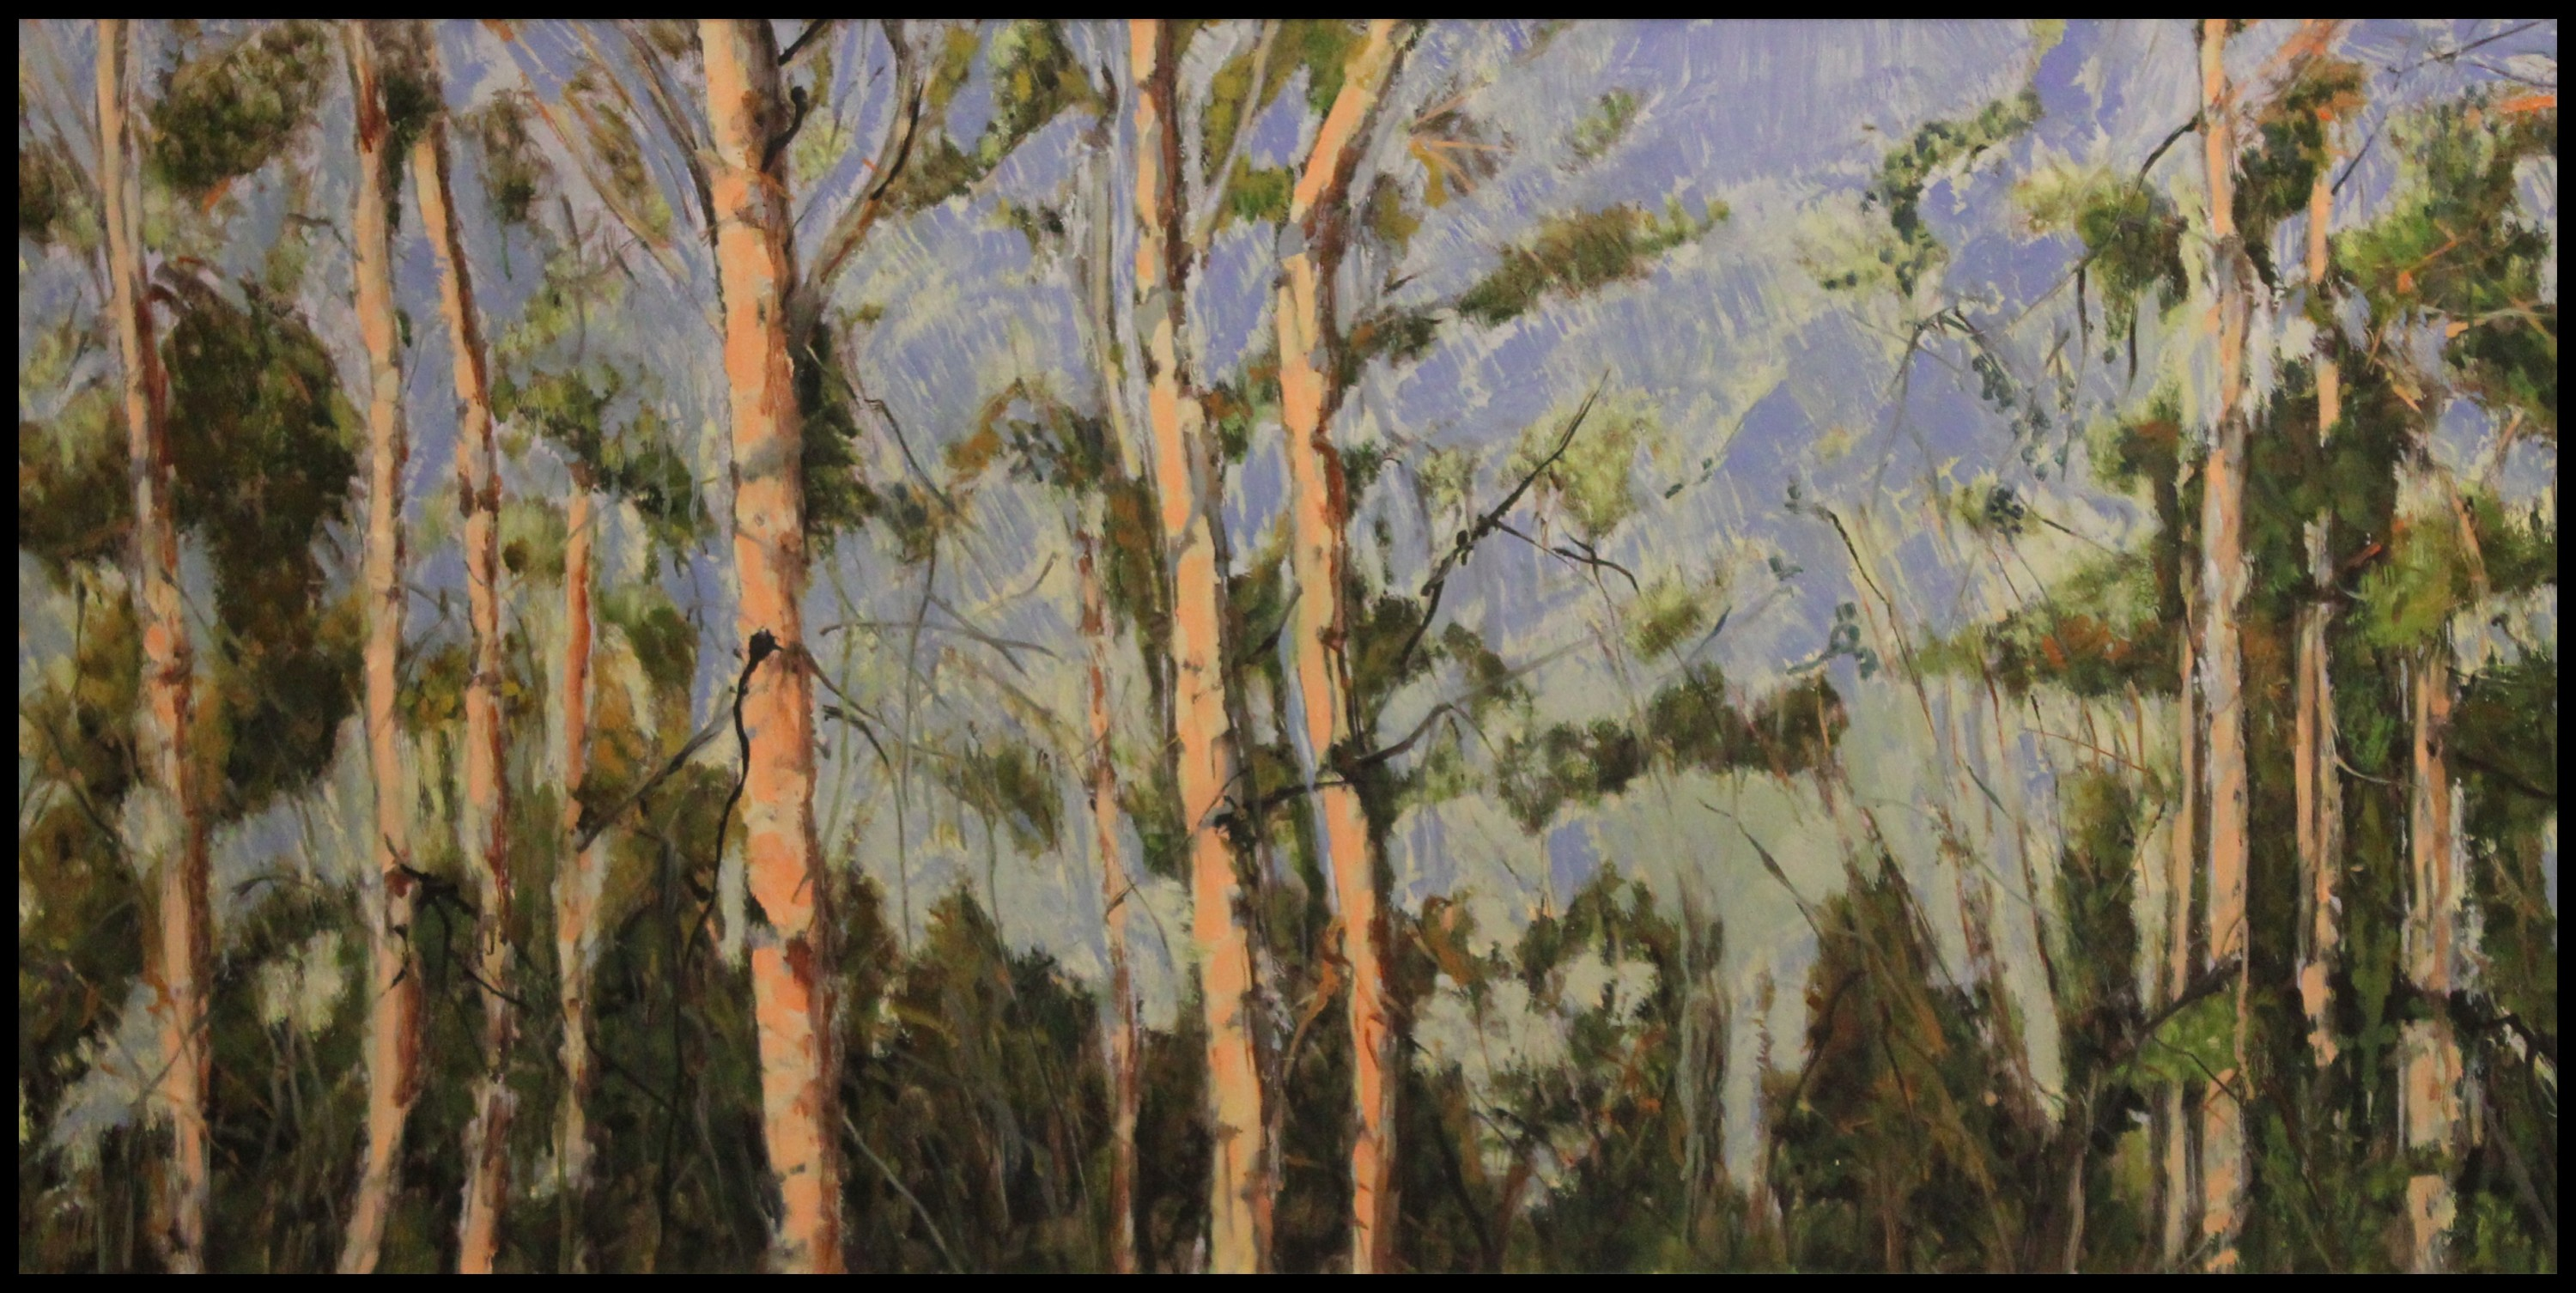 RIVER VALLEY ASPENS - 24X48 - OIL ON CANVAS - 2009